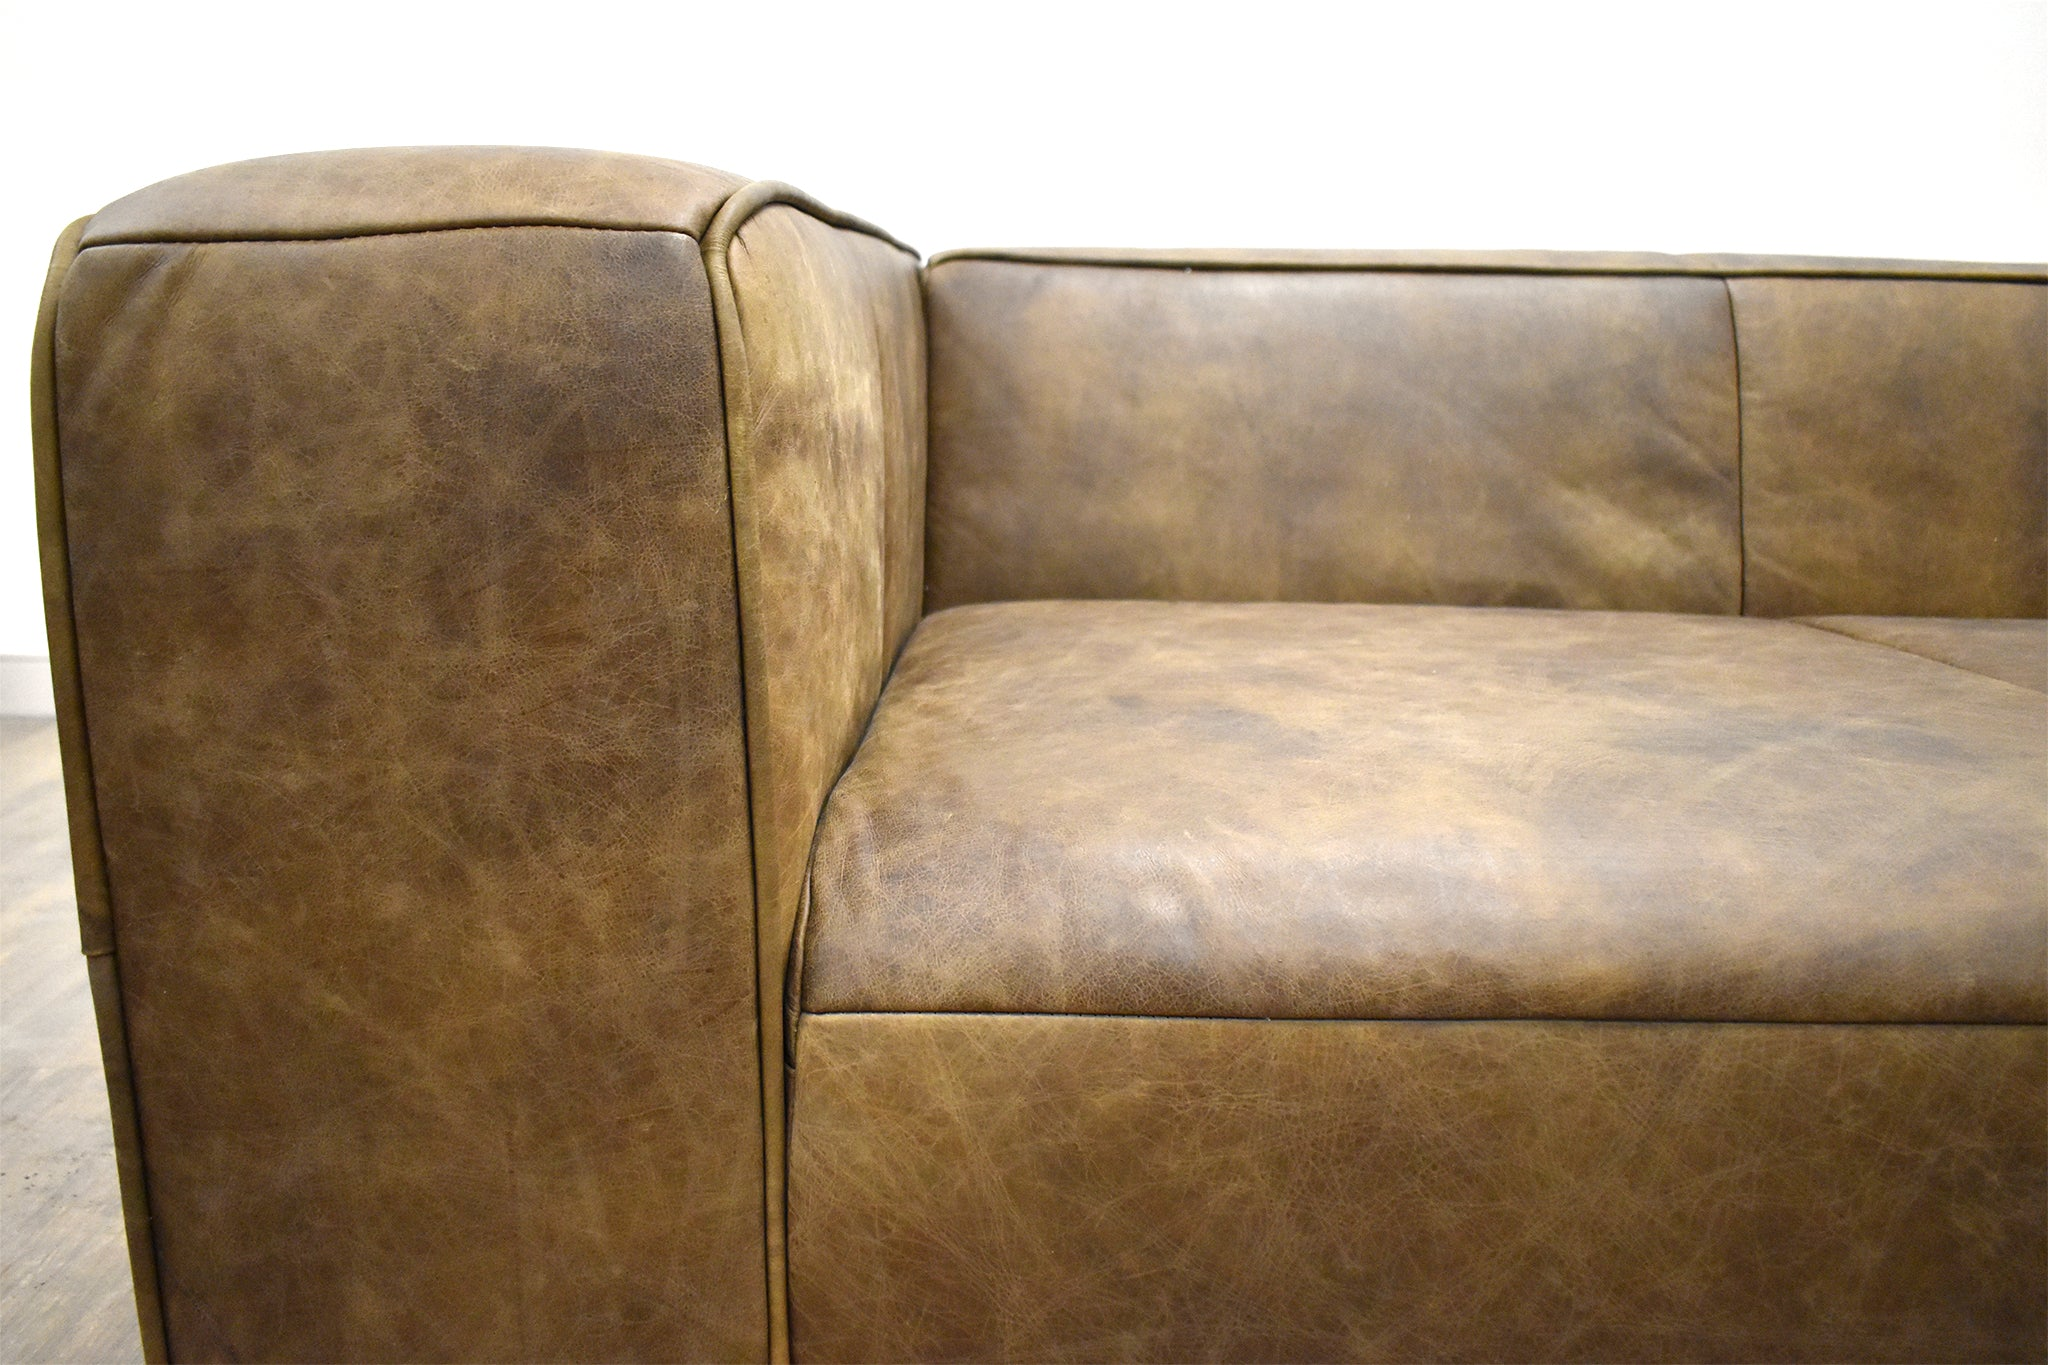 TRIBECA LEATHER SOFAS-furniture stores regina-Hunters Furniture